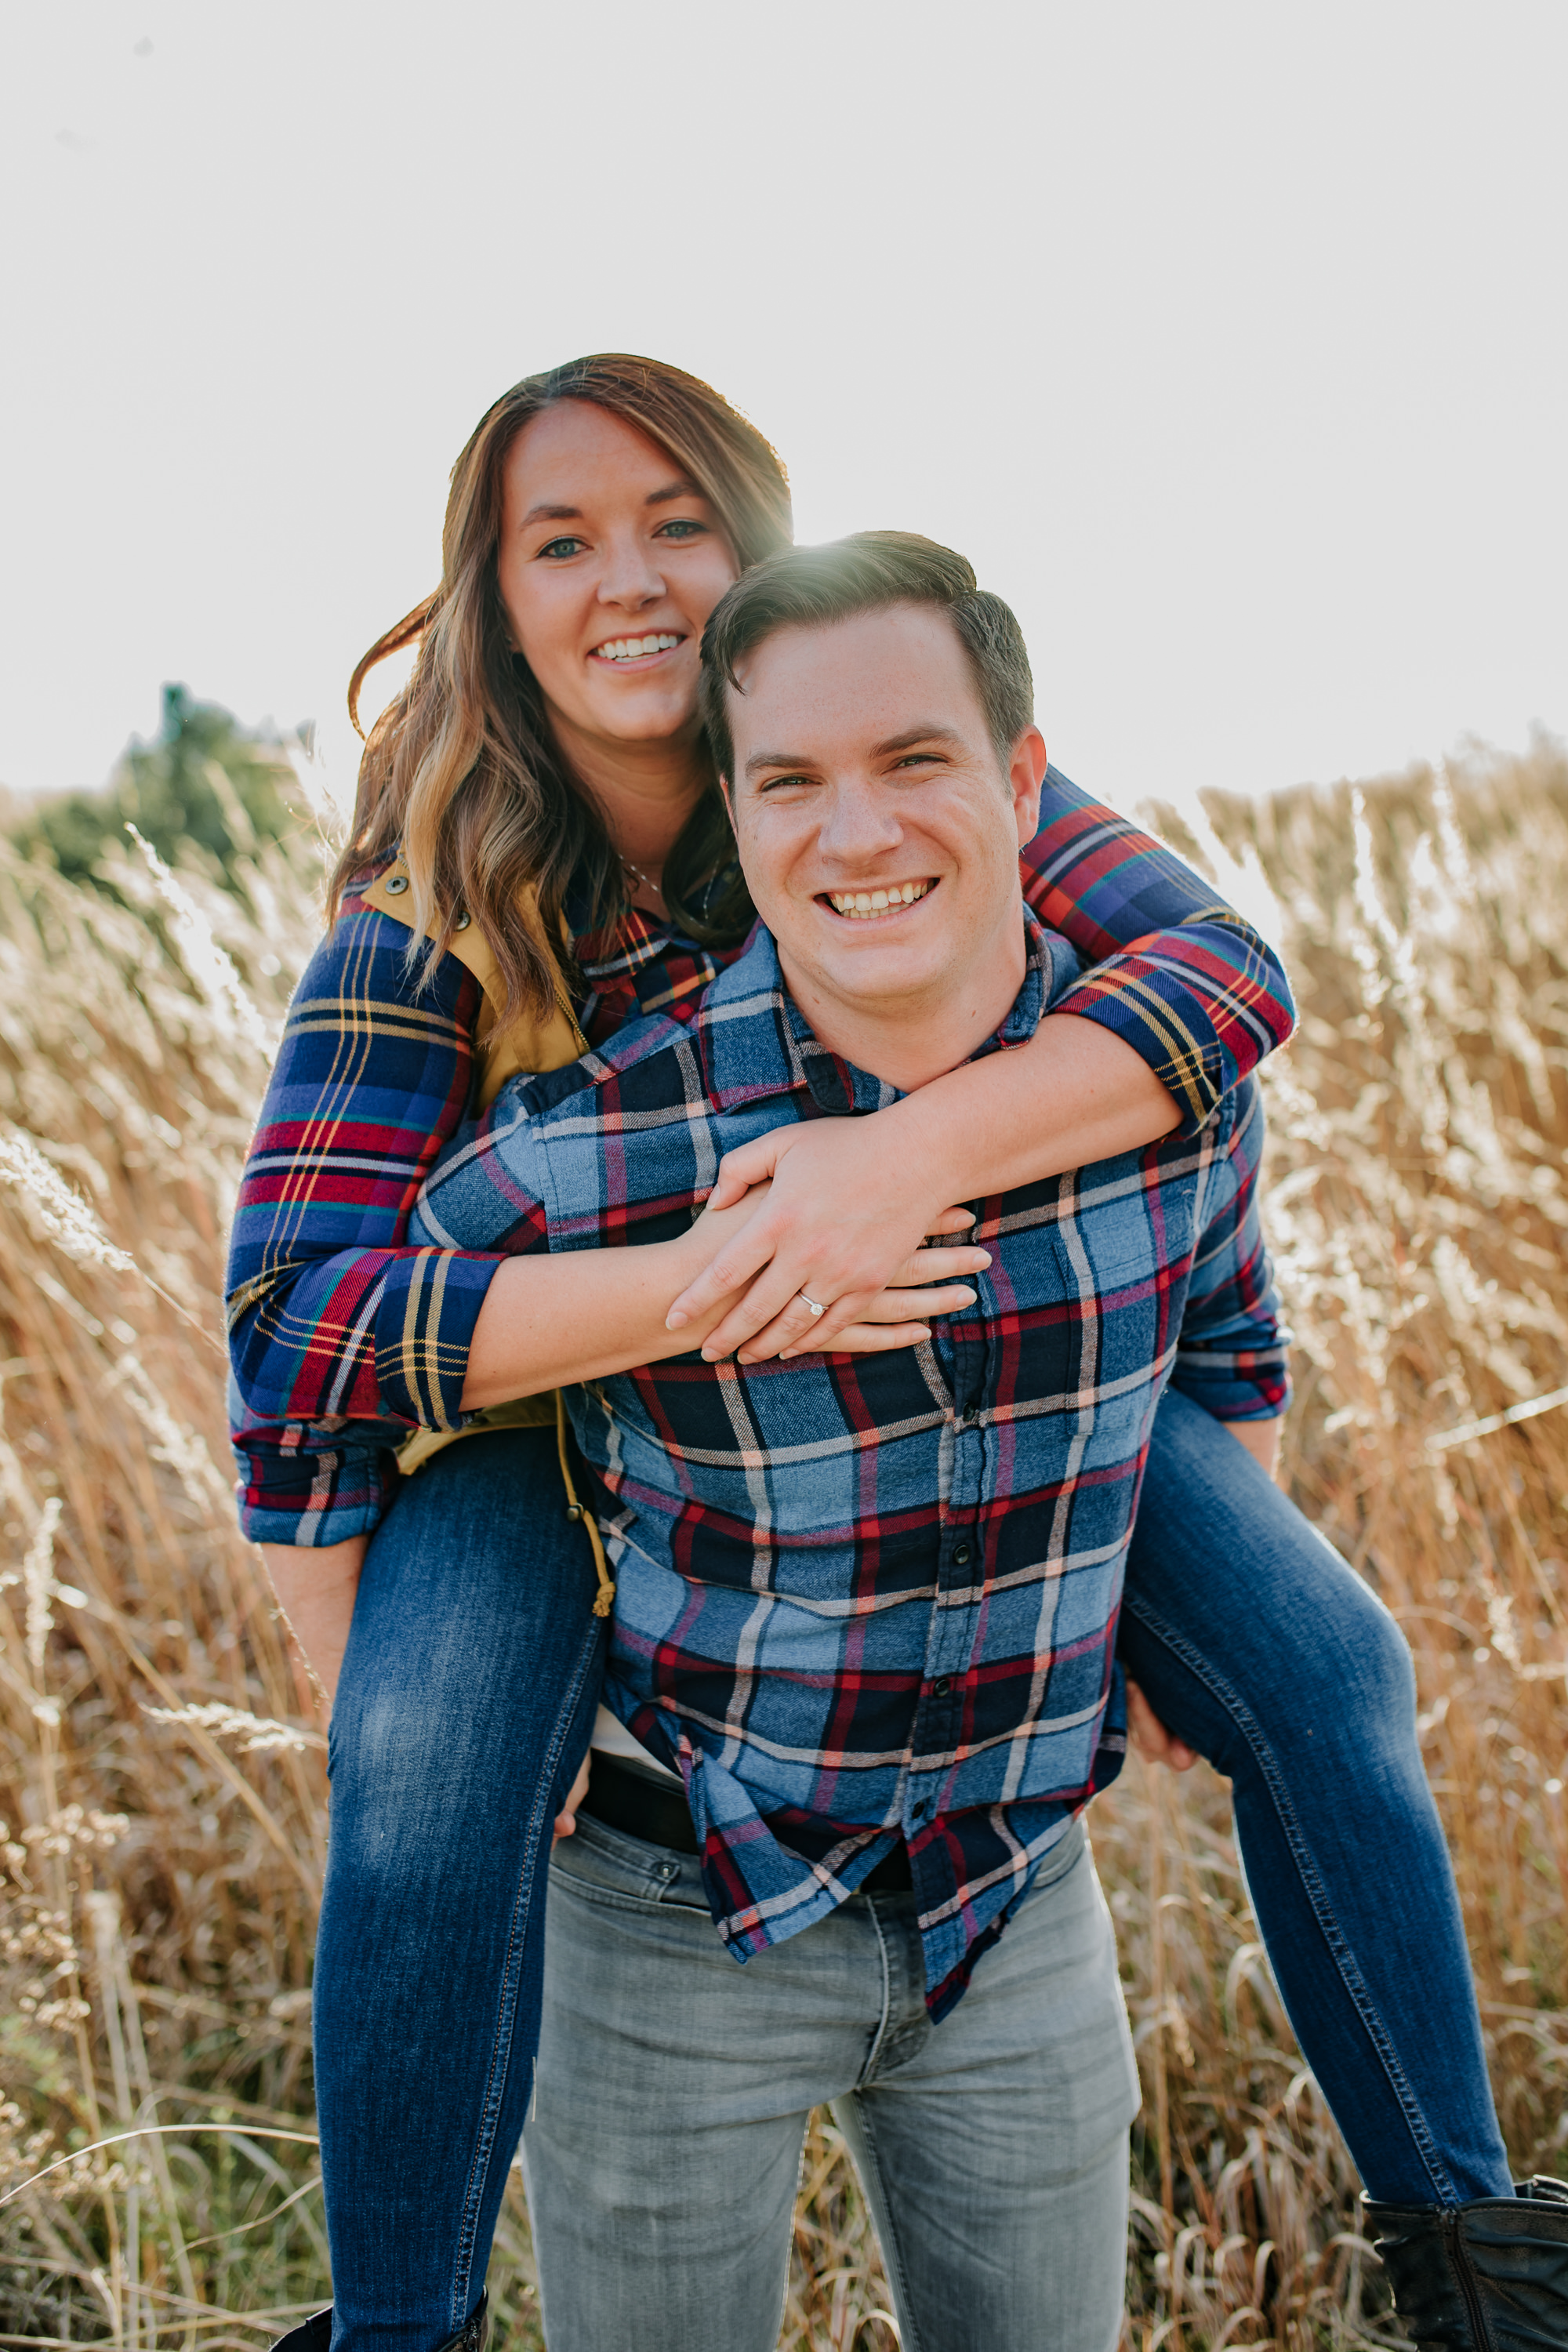 Katie & Adam - Engaged - Nathaniel Jensen Photography - Omaha Nebraska Wedding Photograper - Omaha Nebraska Engagement Session - Chalco Hills Engagement Session-51.jpg